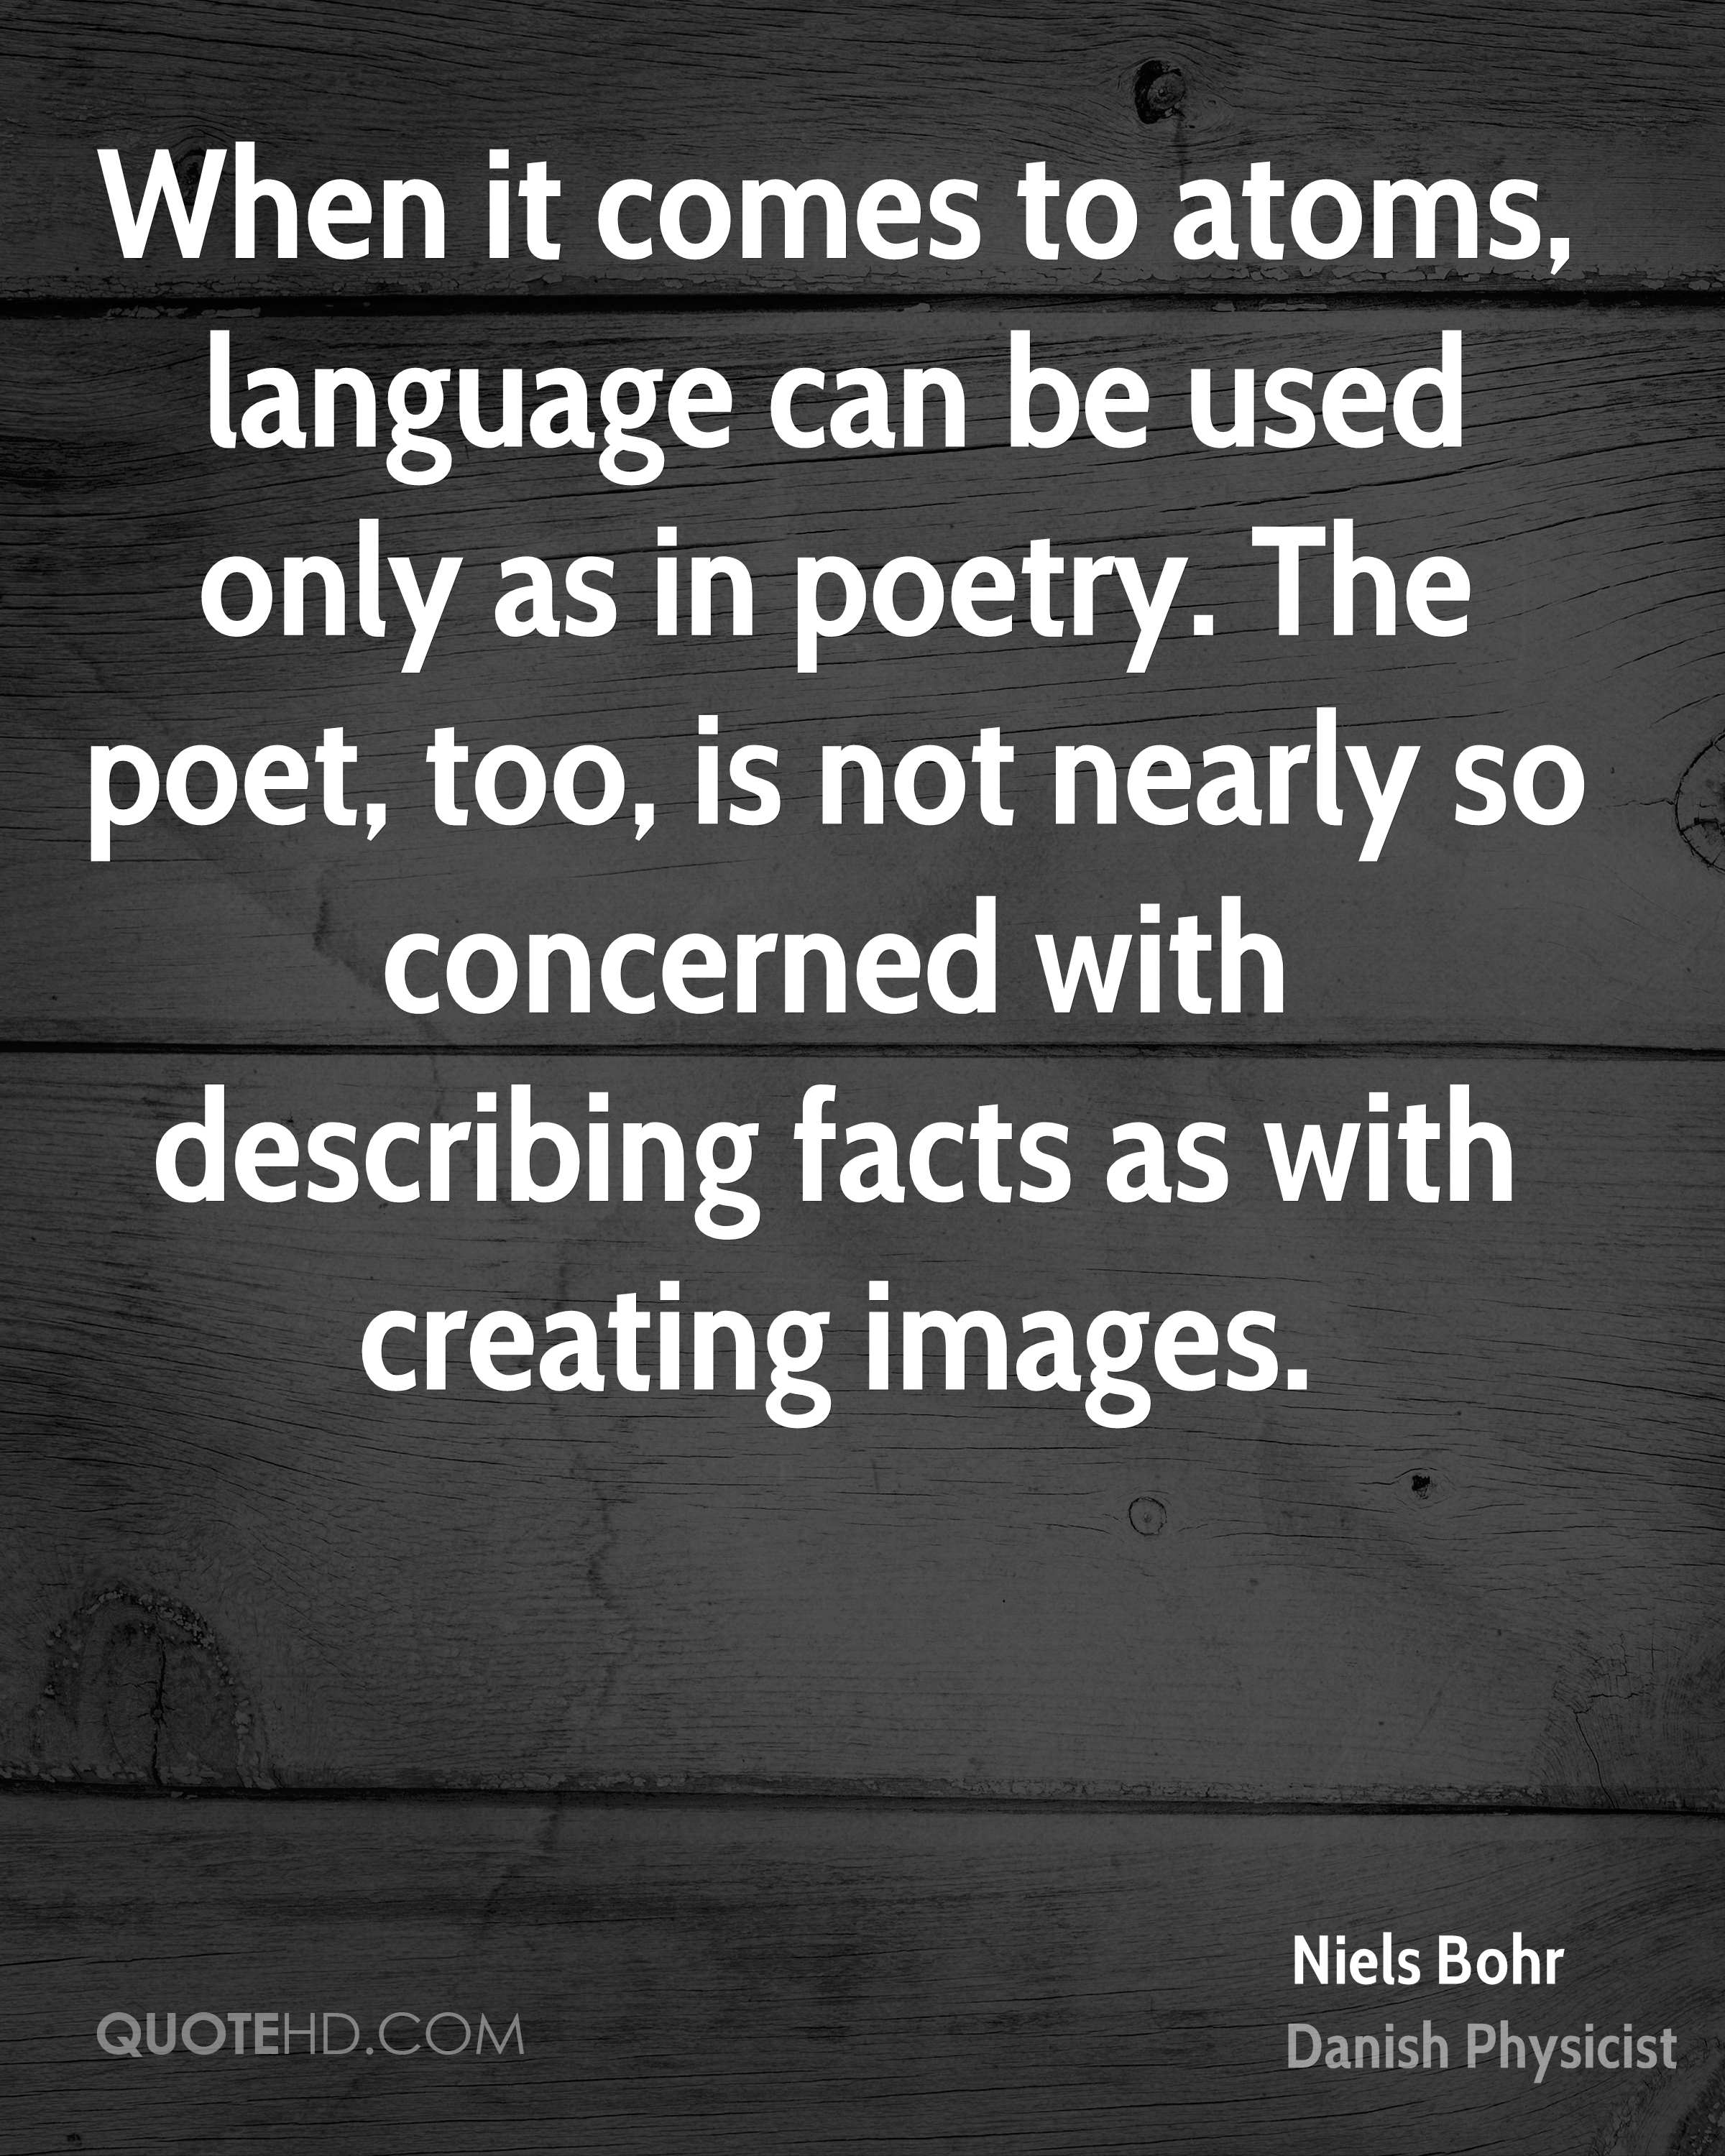 When it comes to atoms, language can be used only as in poetry. The poet, too, is not nearly so concerned with describing facts as with creating images.